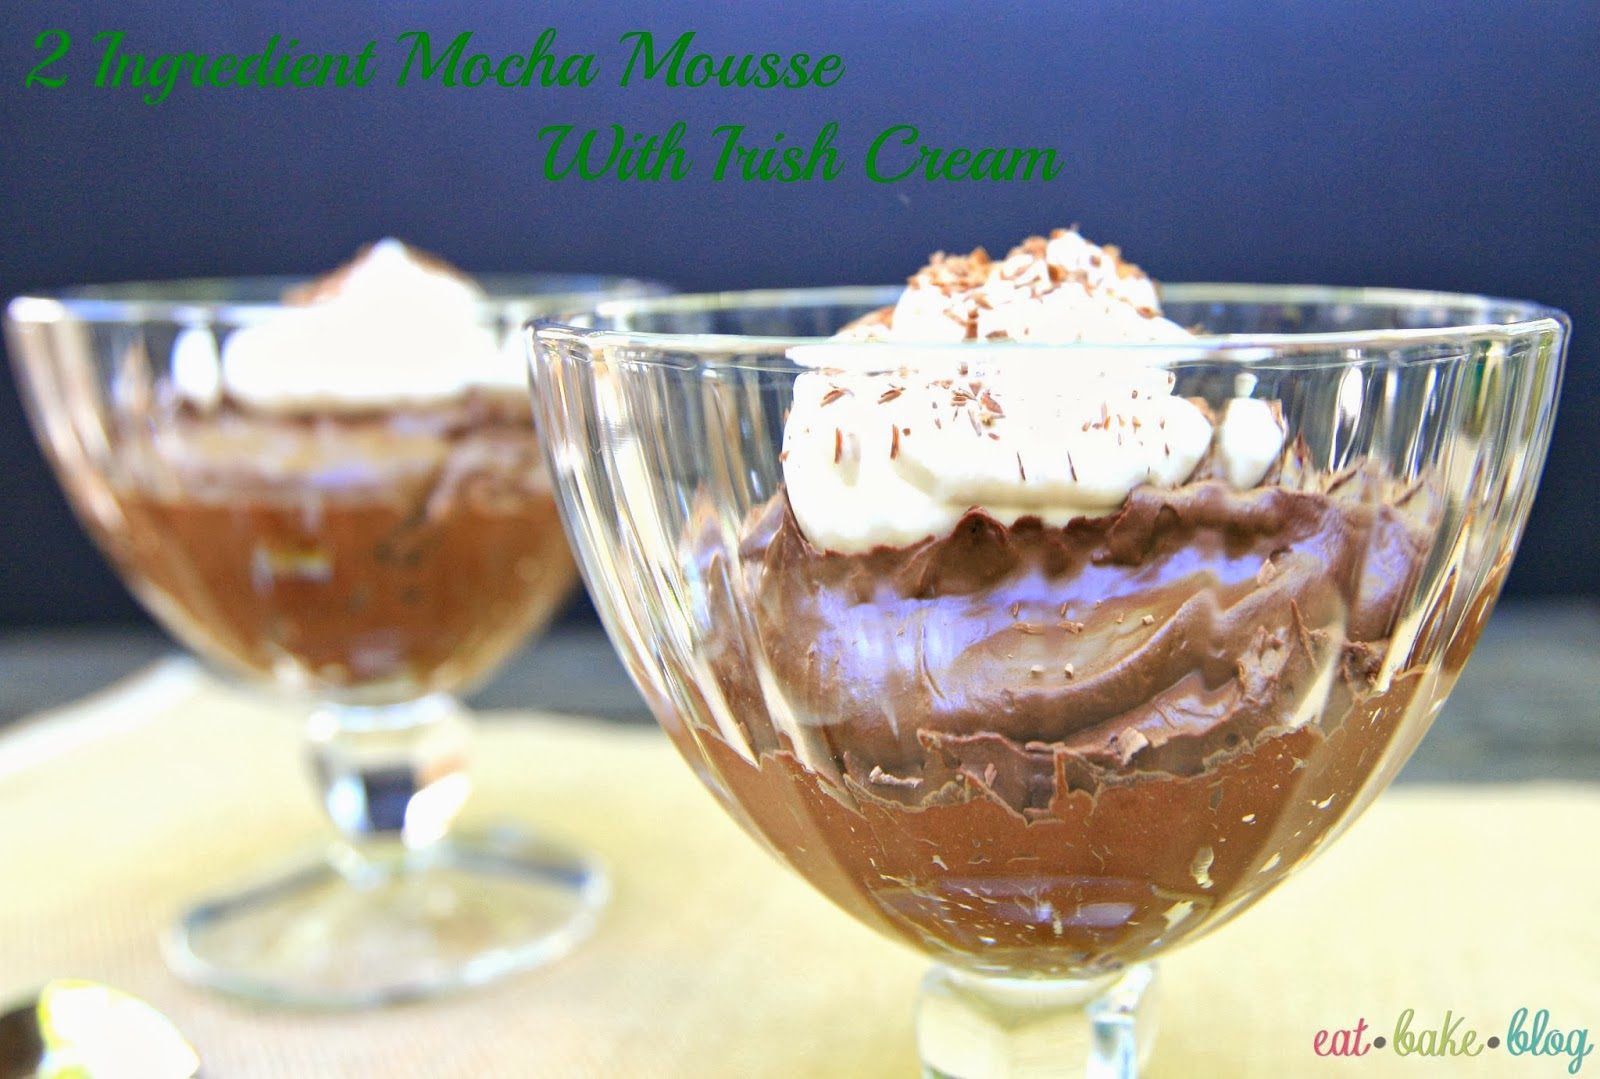 Eat. Bake. Blog.: 2 Ingredient Mocha Mousse With Irish Cream